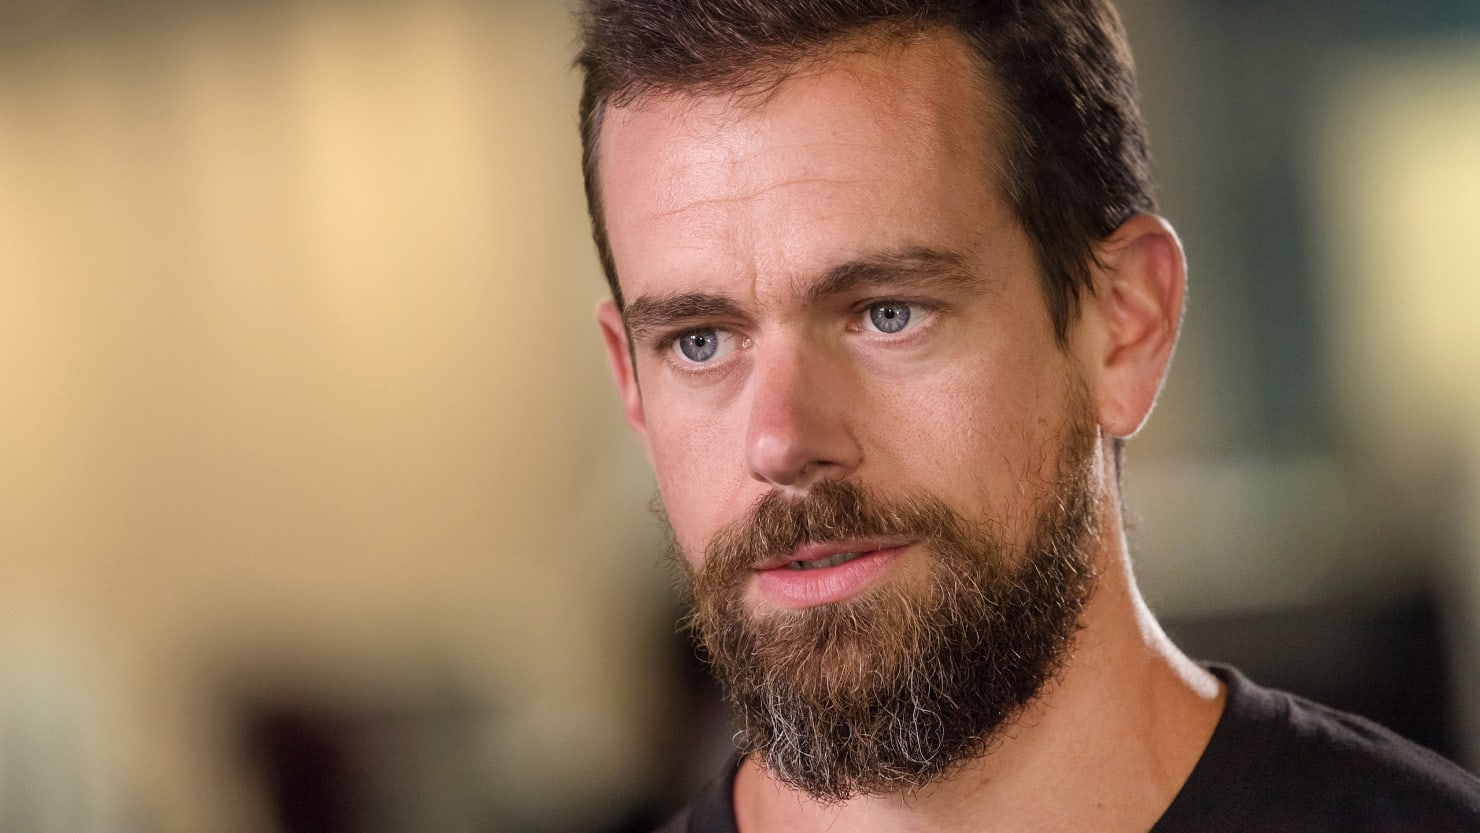 Confirmed: Jack Dorsey is the new CEO of Twitter